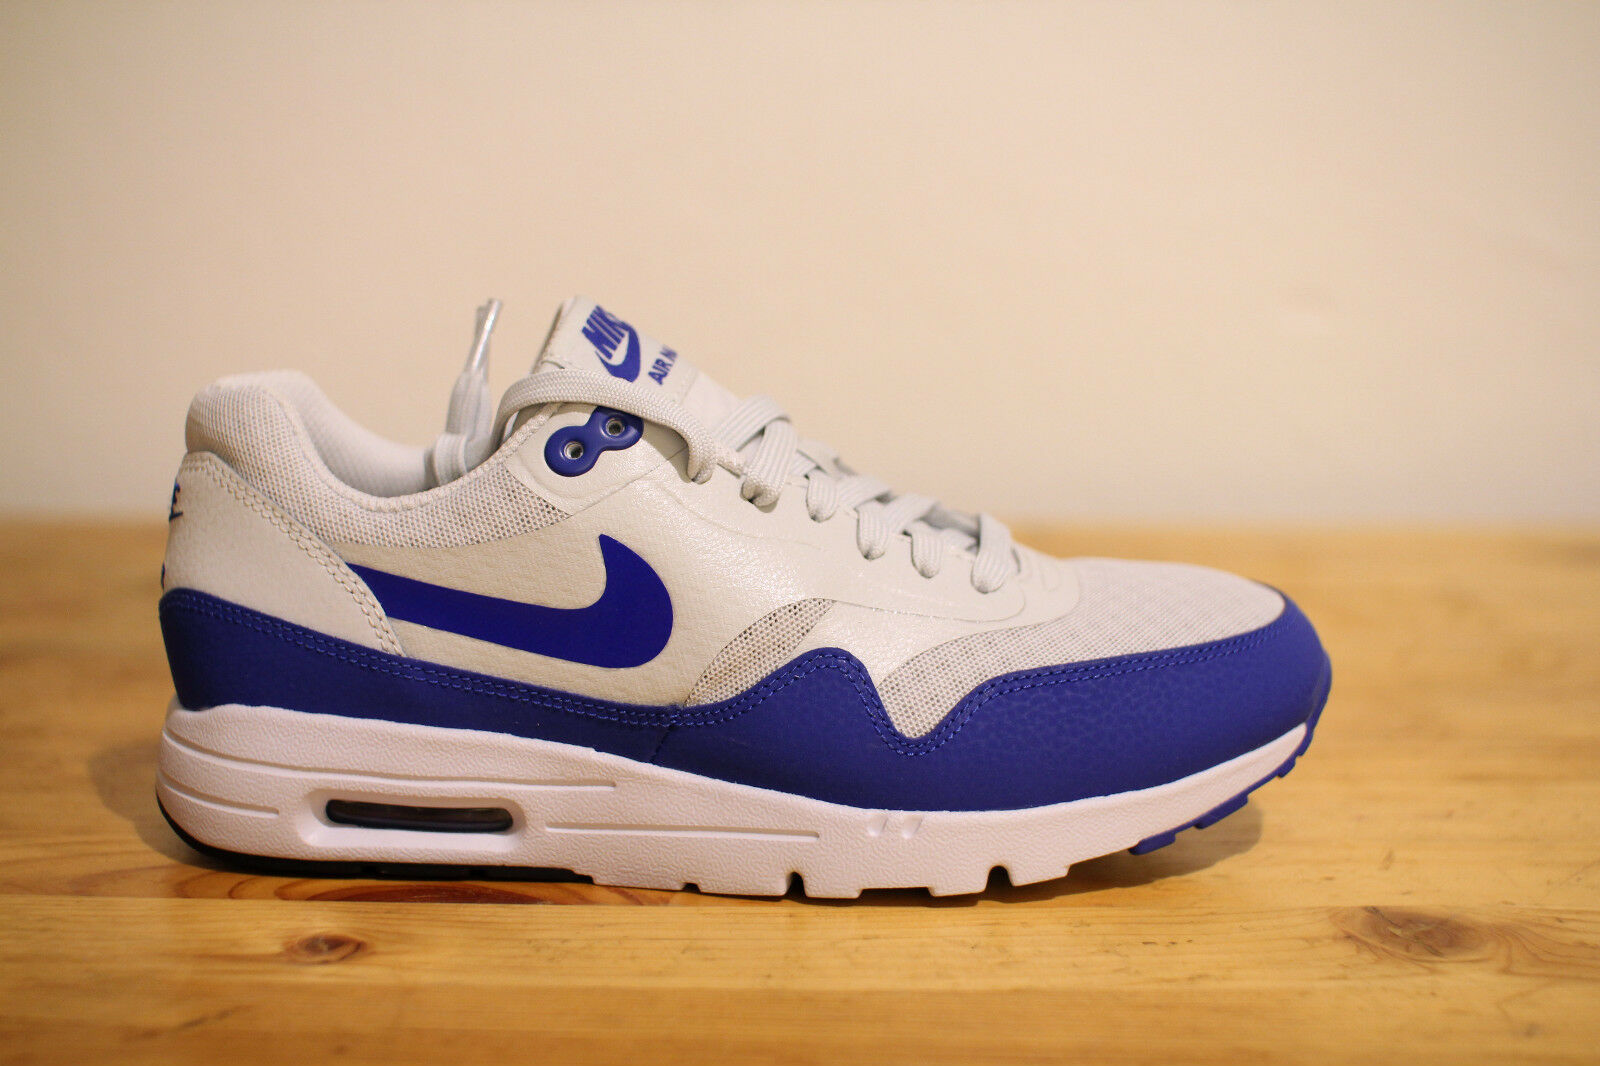 Nike Air  Max 1 Ultra Essentials blu   grigio Gr. 39 UK 5,5 NEU &OVP  negozio online